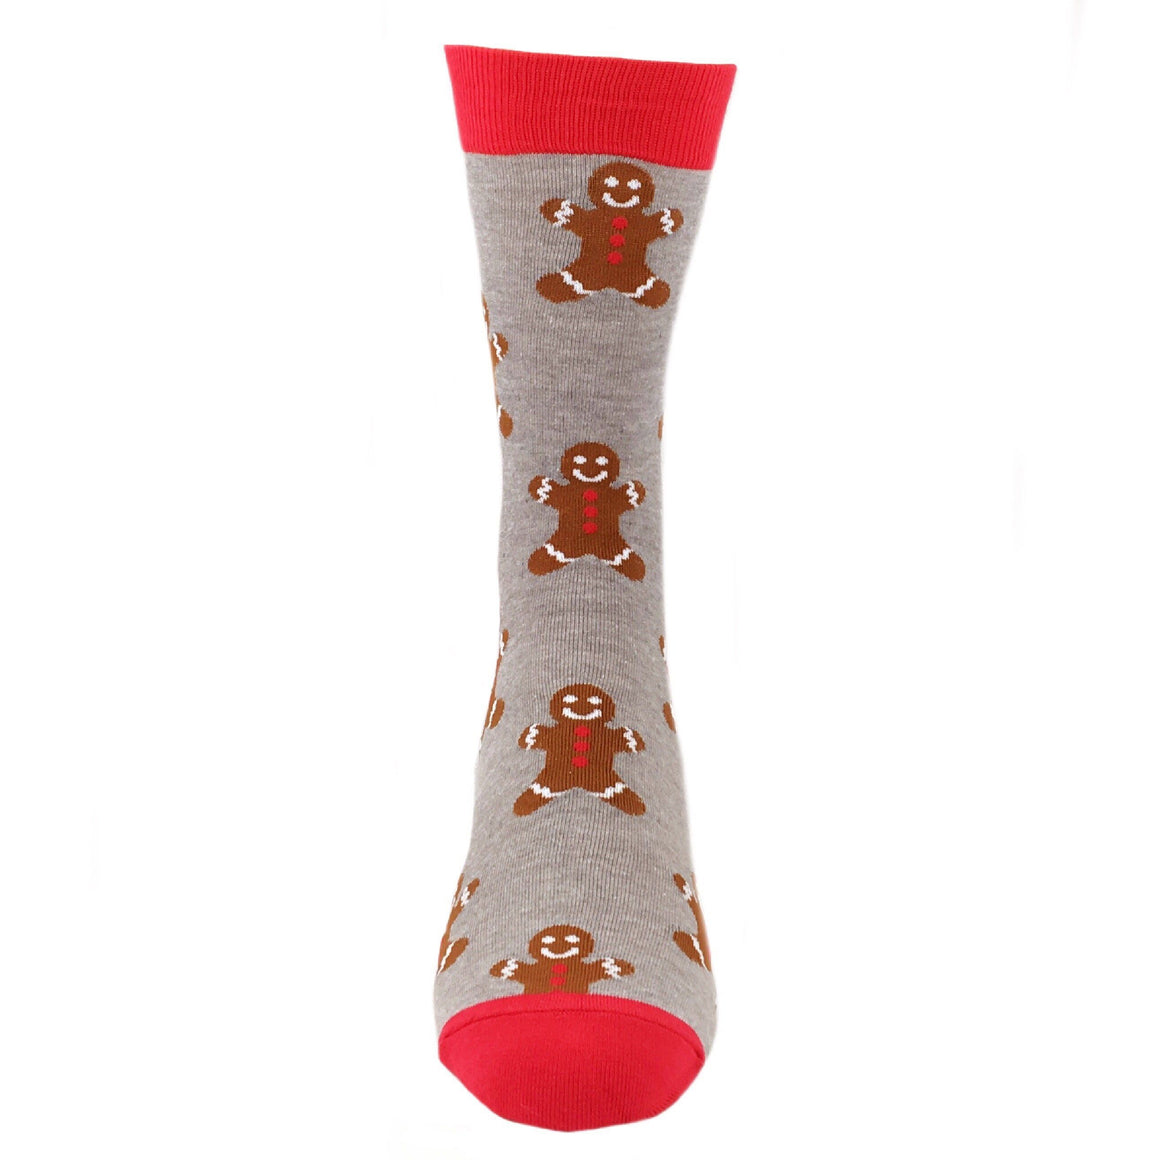 Gingerbread Men Christmas Socks by Good Luck Sock - The Sock Spot